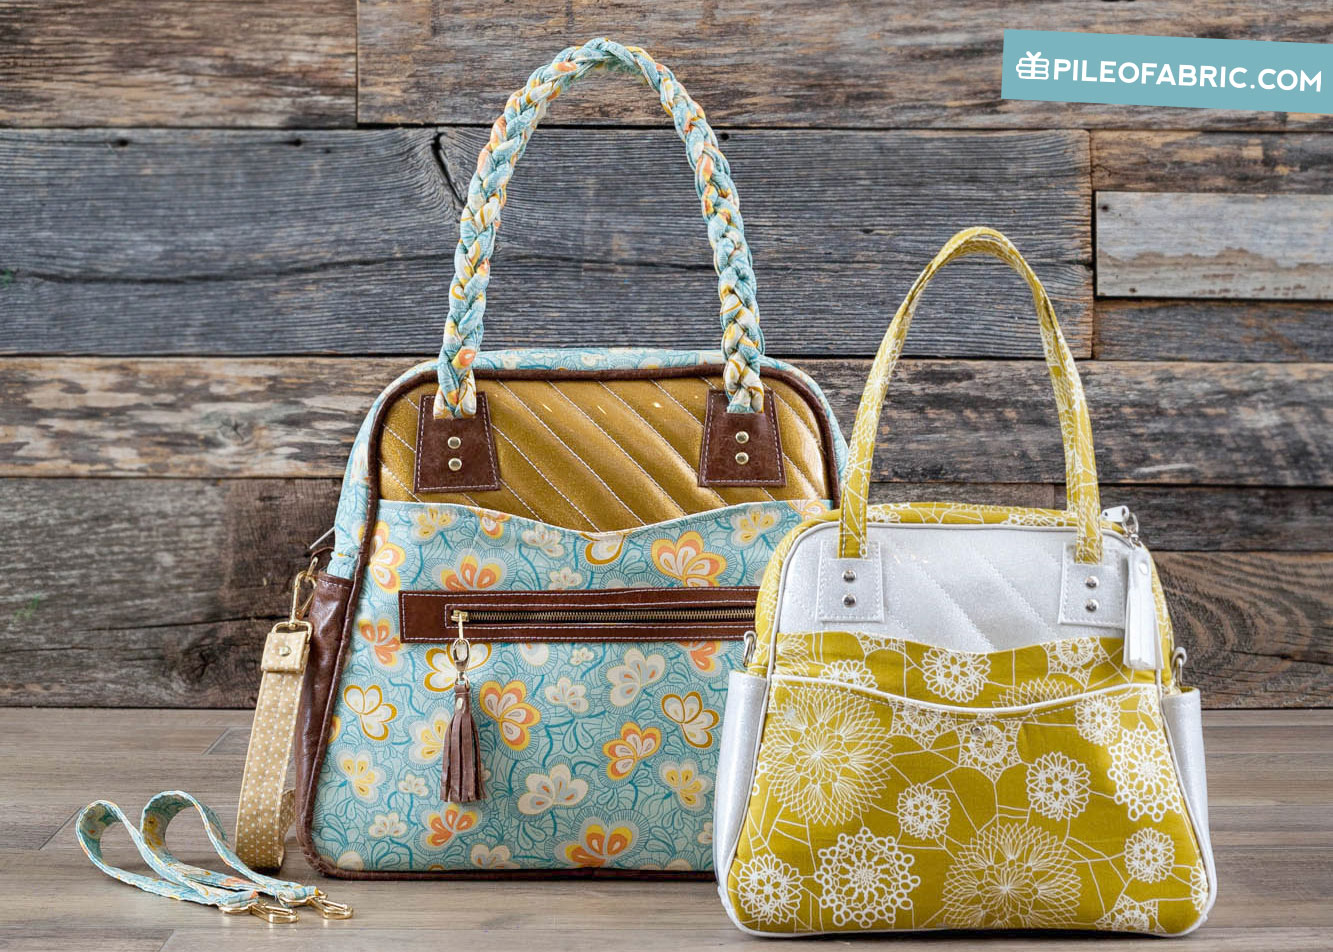 Shiloh Satchel Bag Pattern